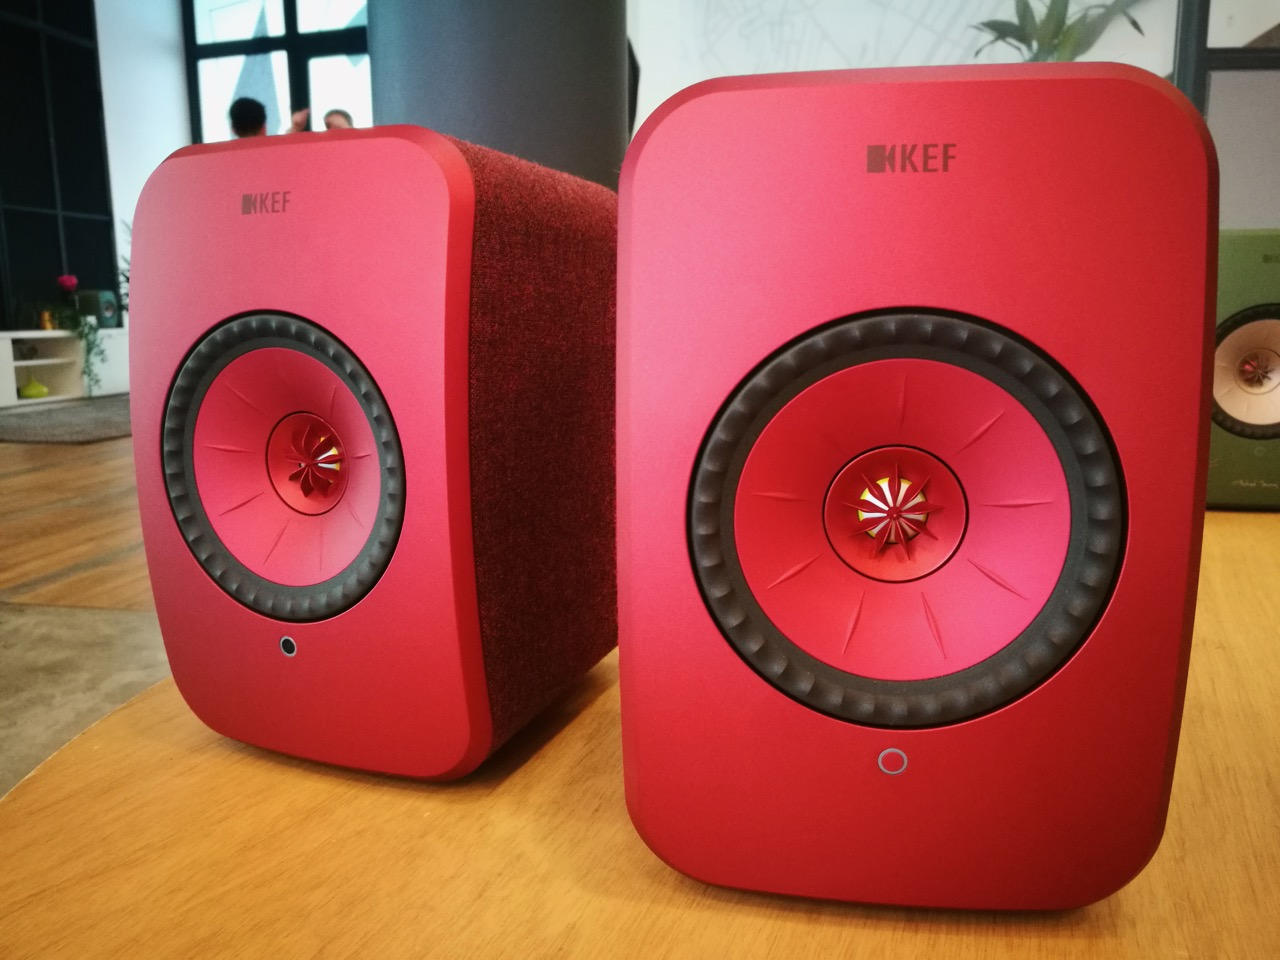 KEF introduced LSX – Fully Stereo and Wireless Music System